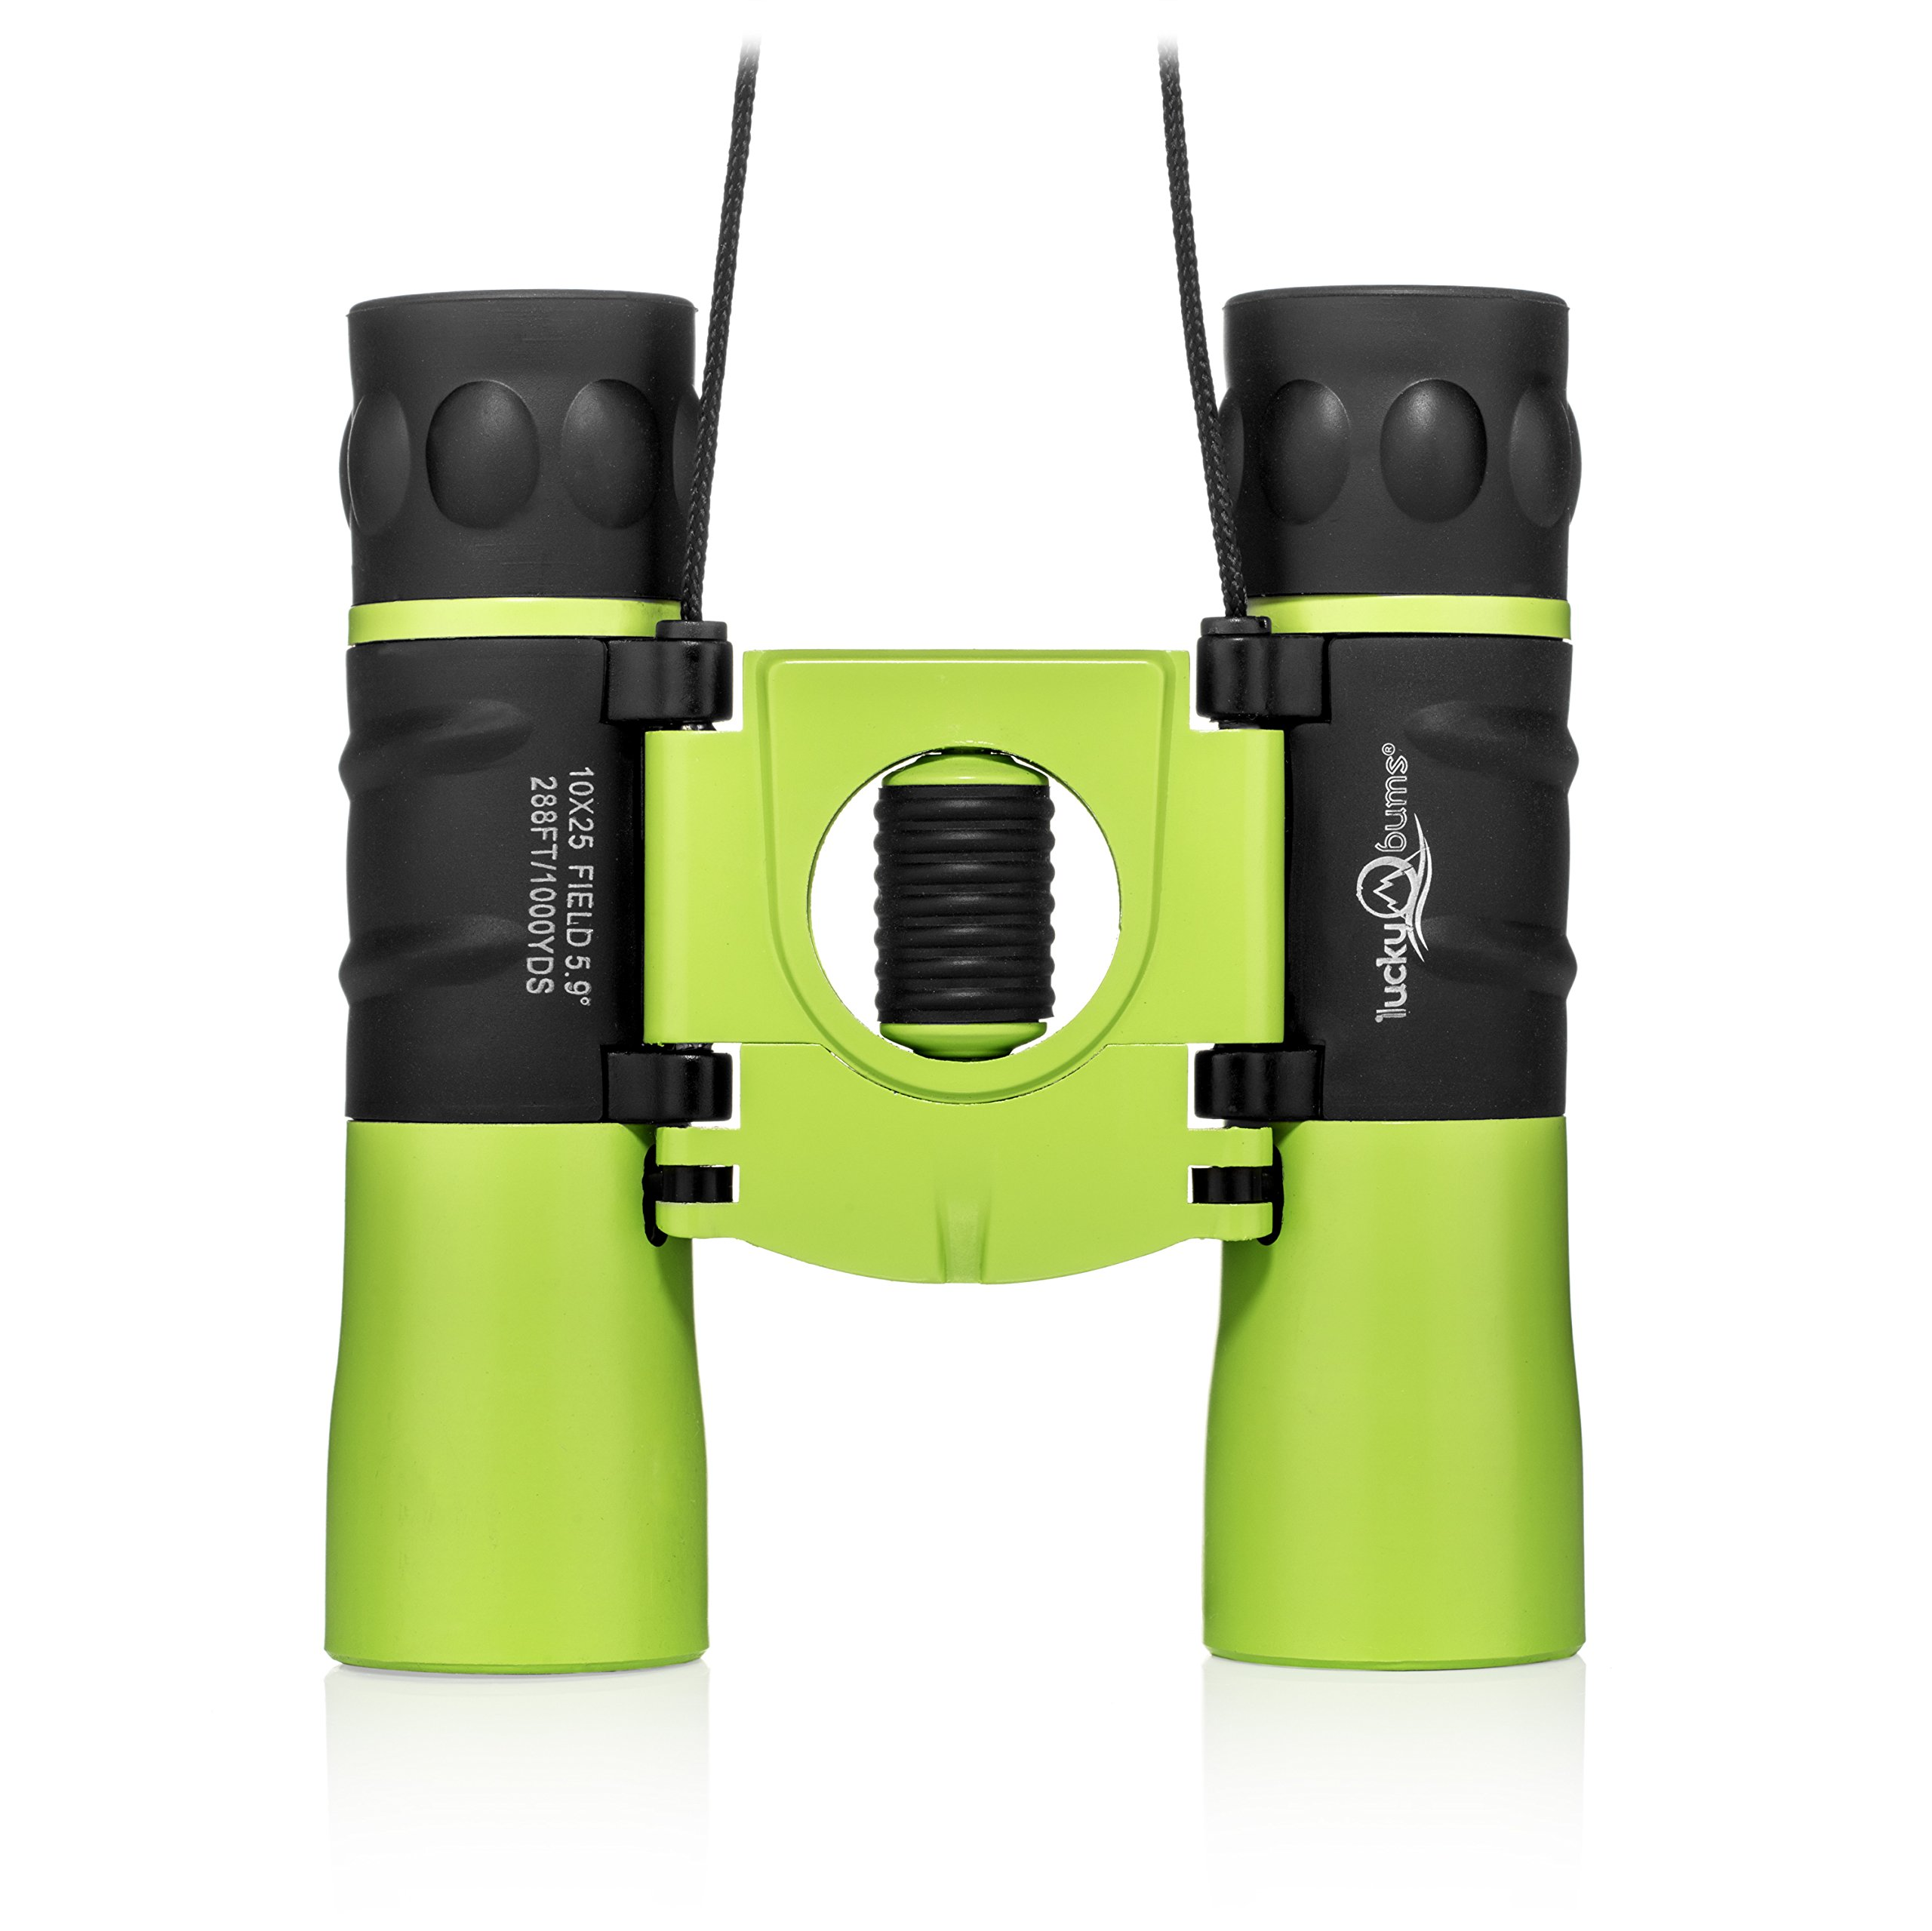 Lucky Bums Youth Kids 10x25 Objective Power Lens Scout Bino Compact Binoculars, Kelly Green by Lucky Bums